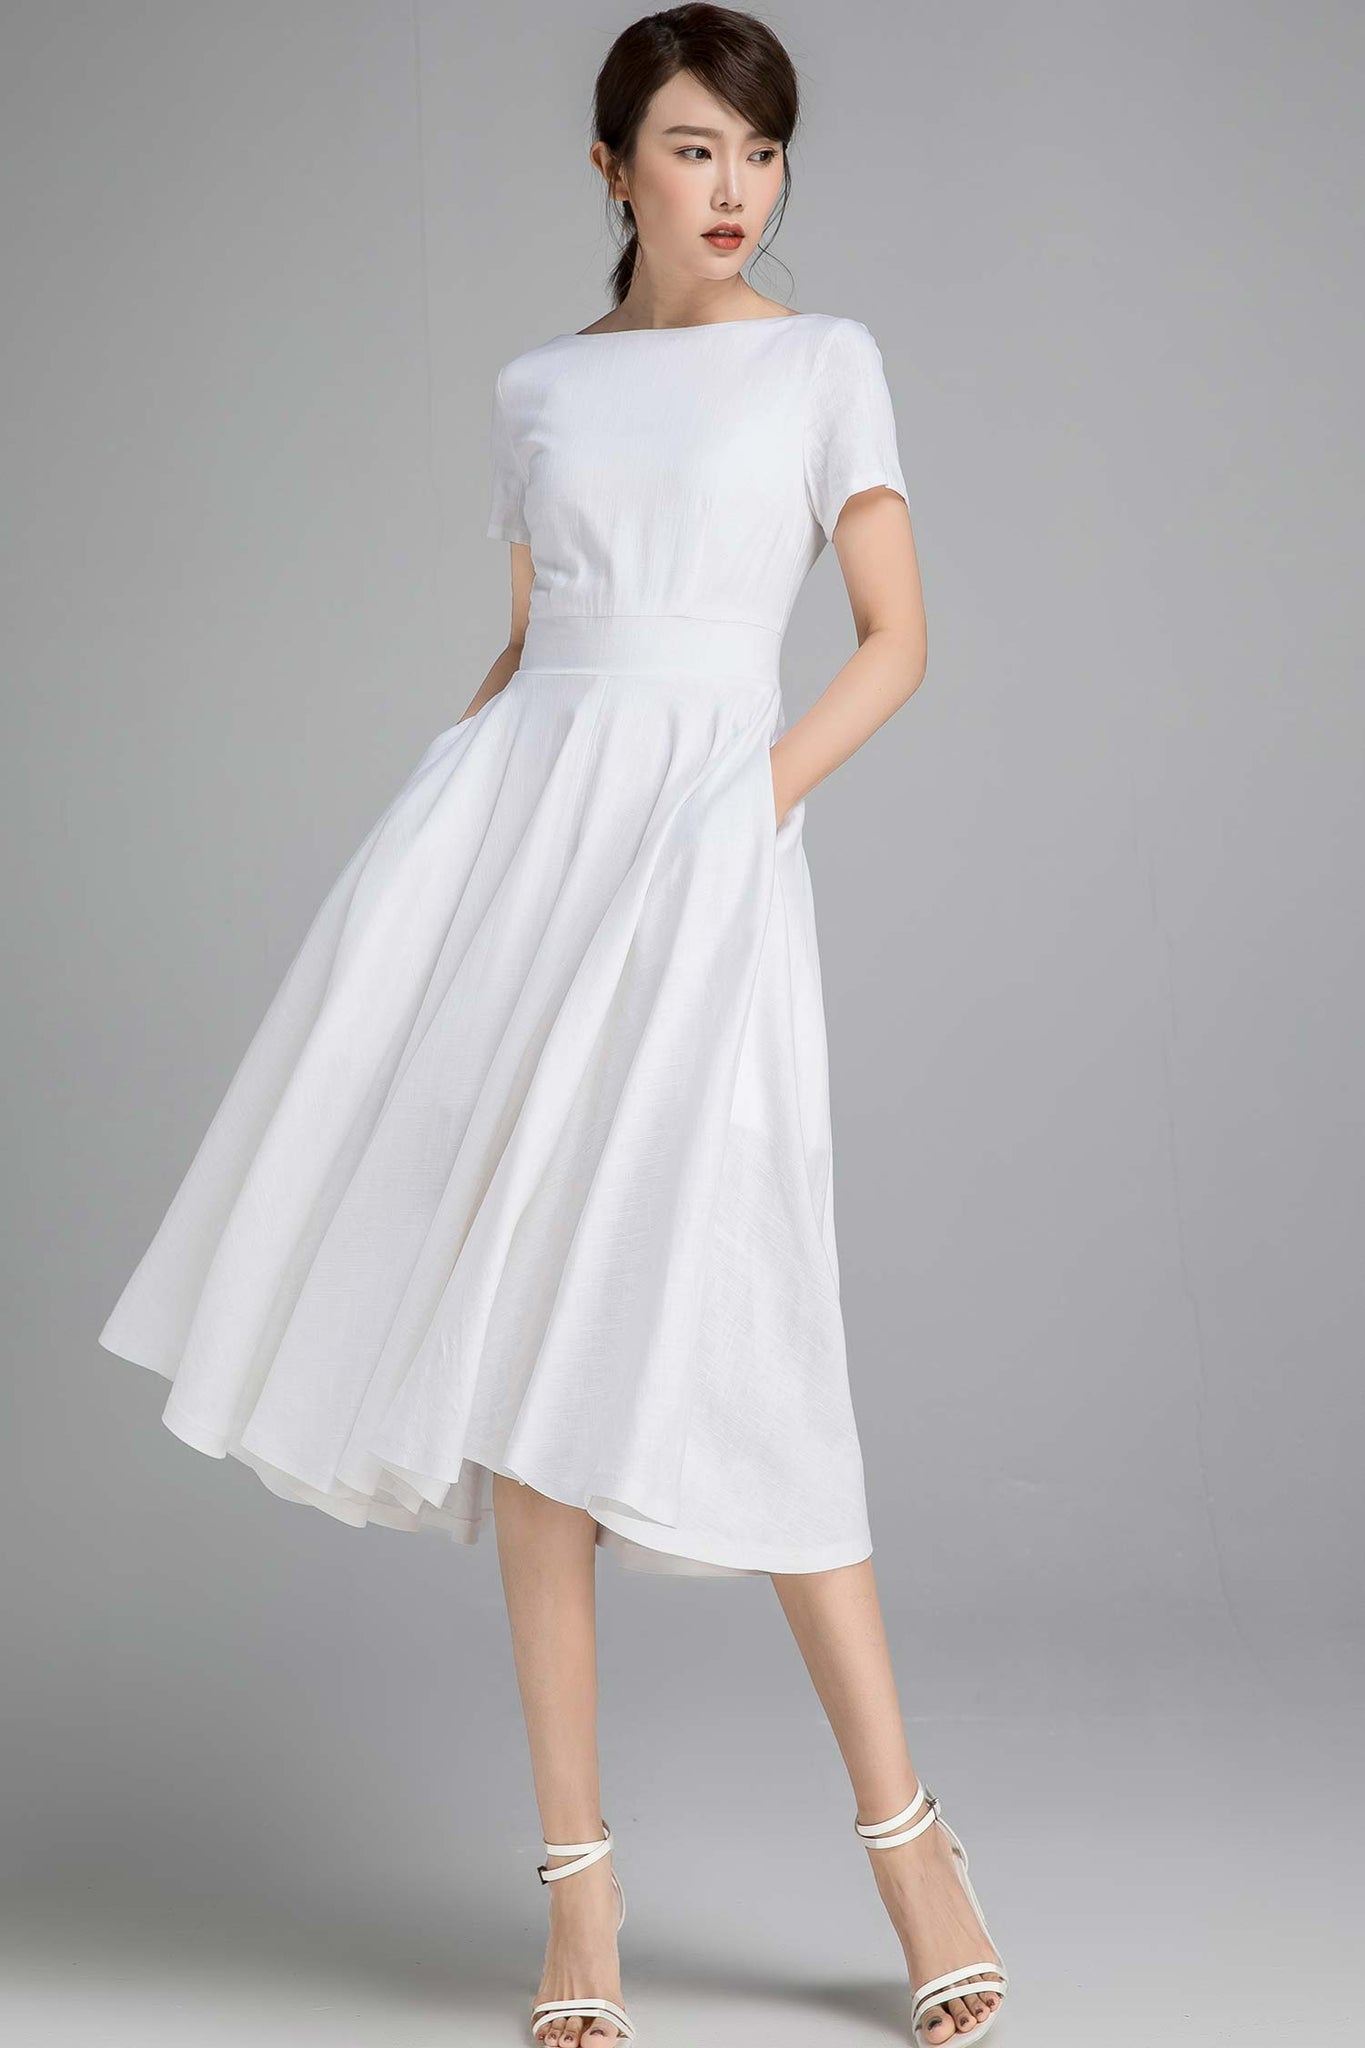 Swing fit and flare dress in white 2340#